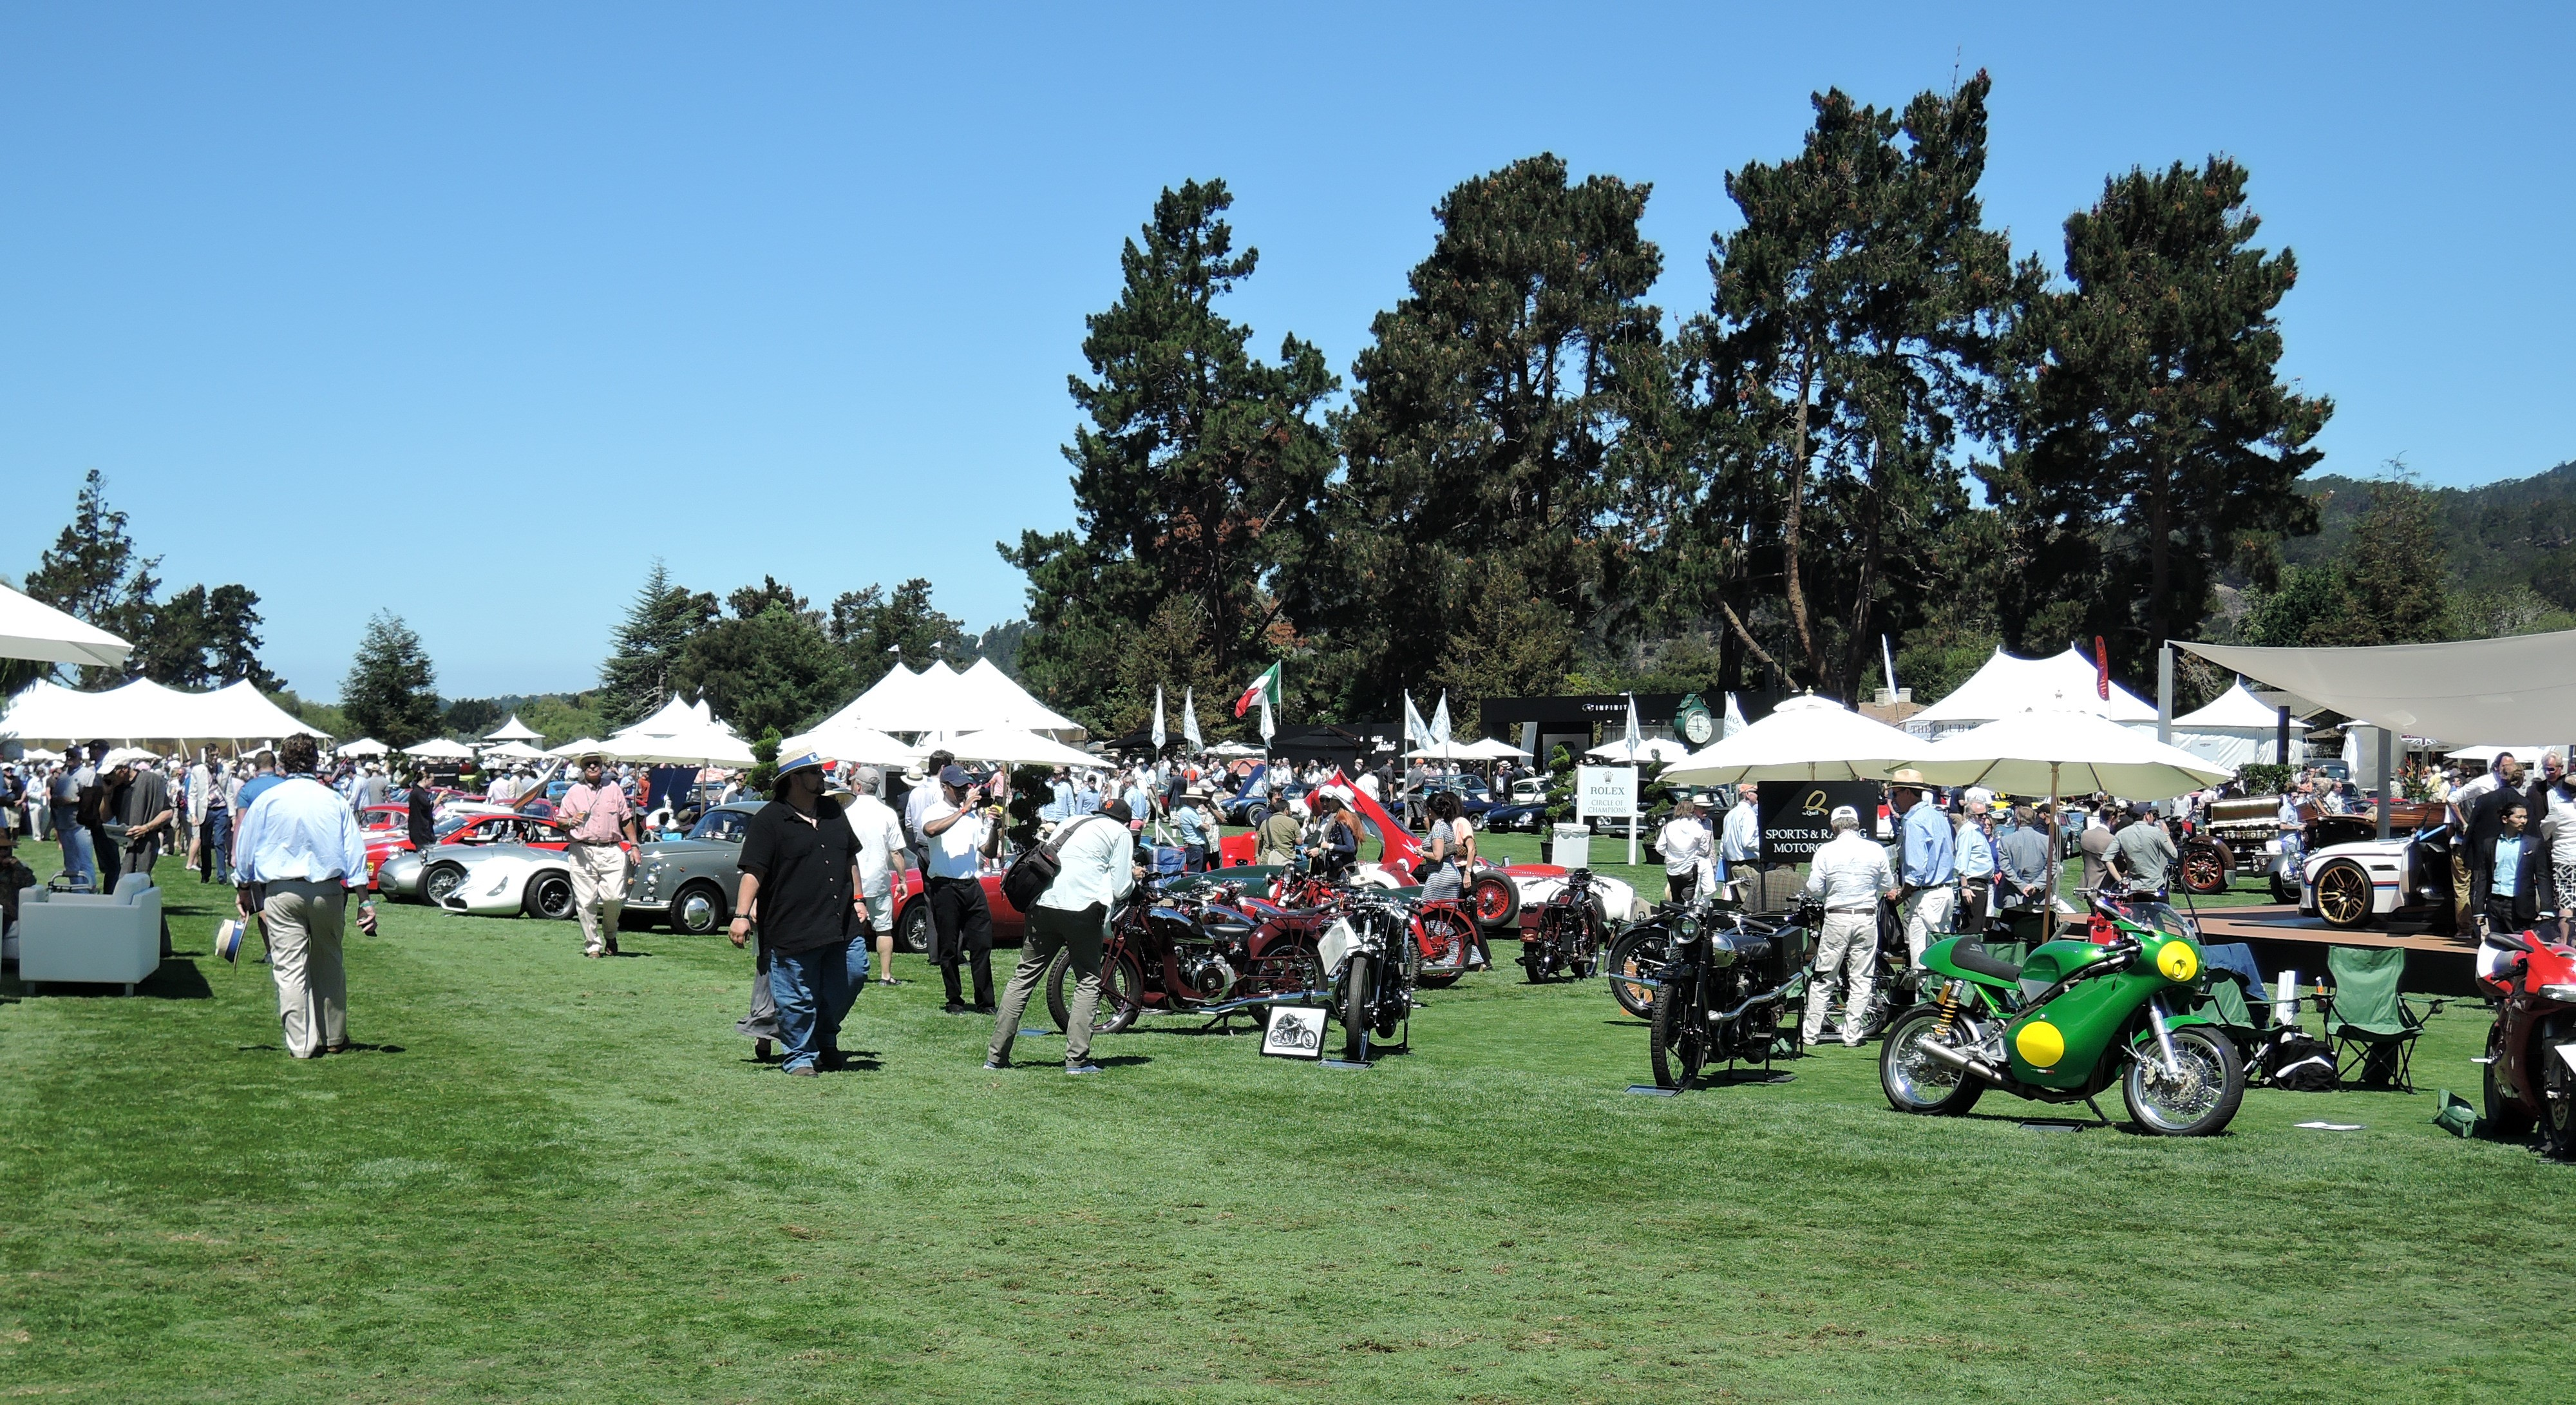 Sports and Racing Motorcycles on the field - the quail